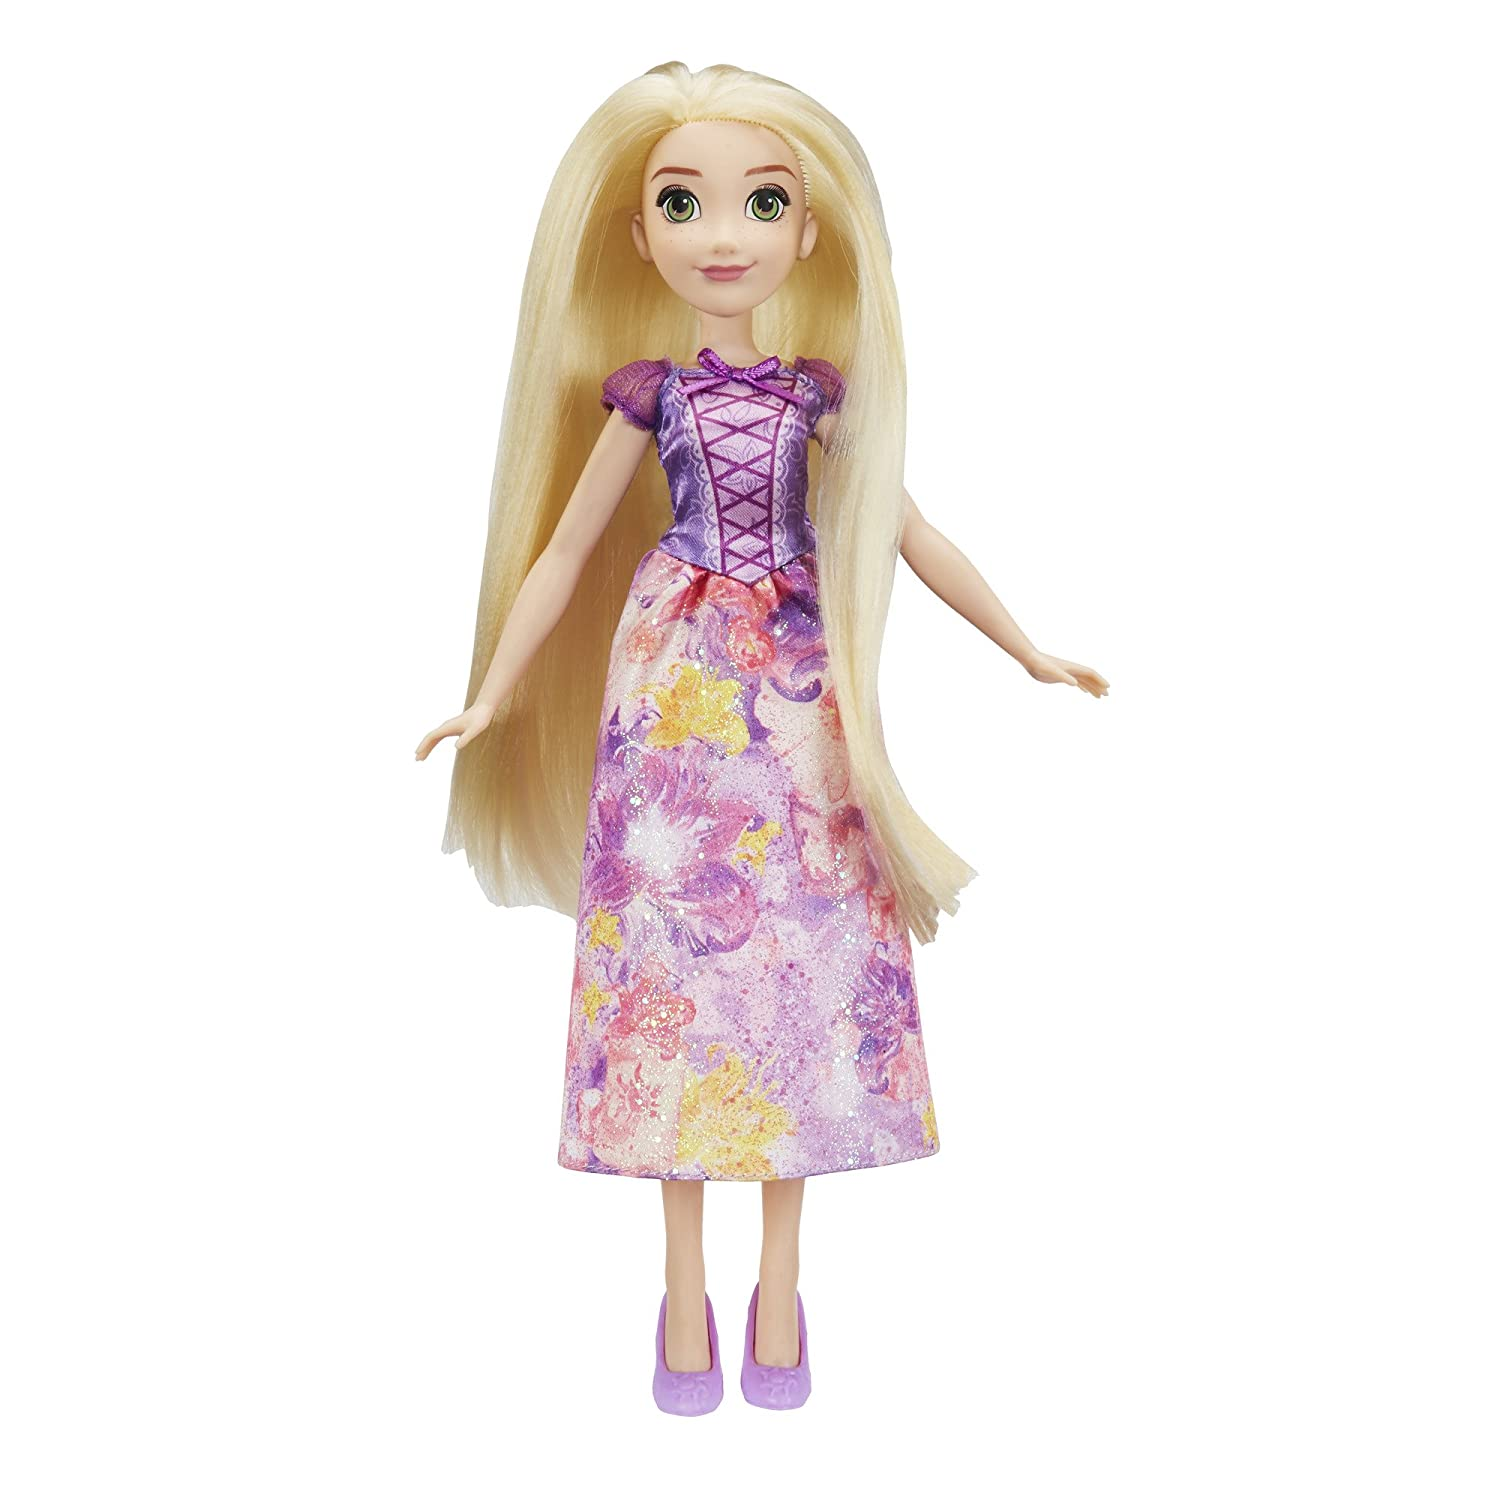 DISNEY Princess Royal Shimmer Rapunzel Doll Hasbro E0273